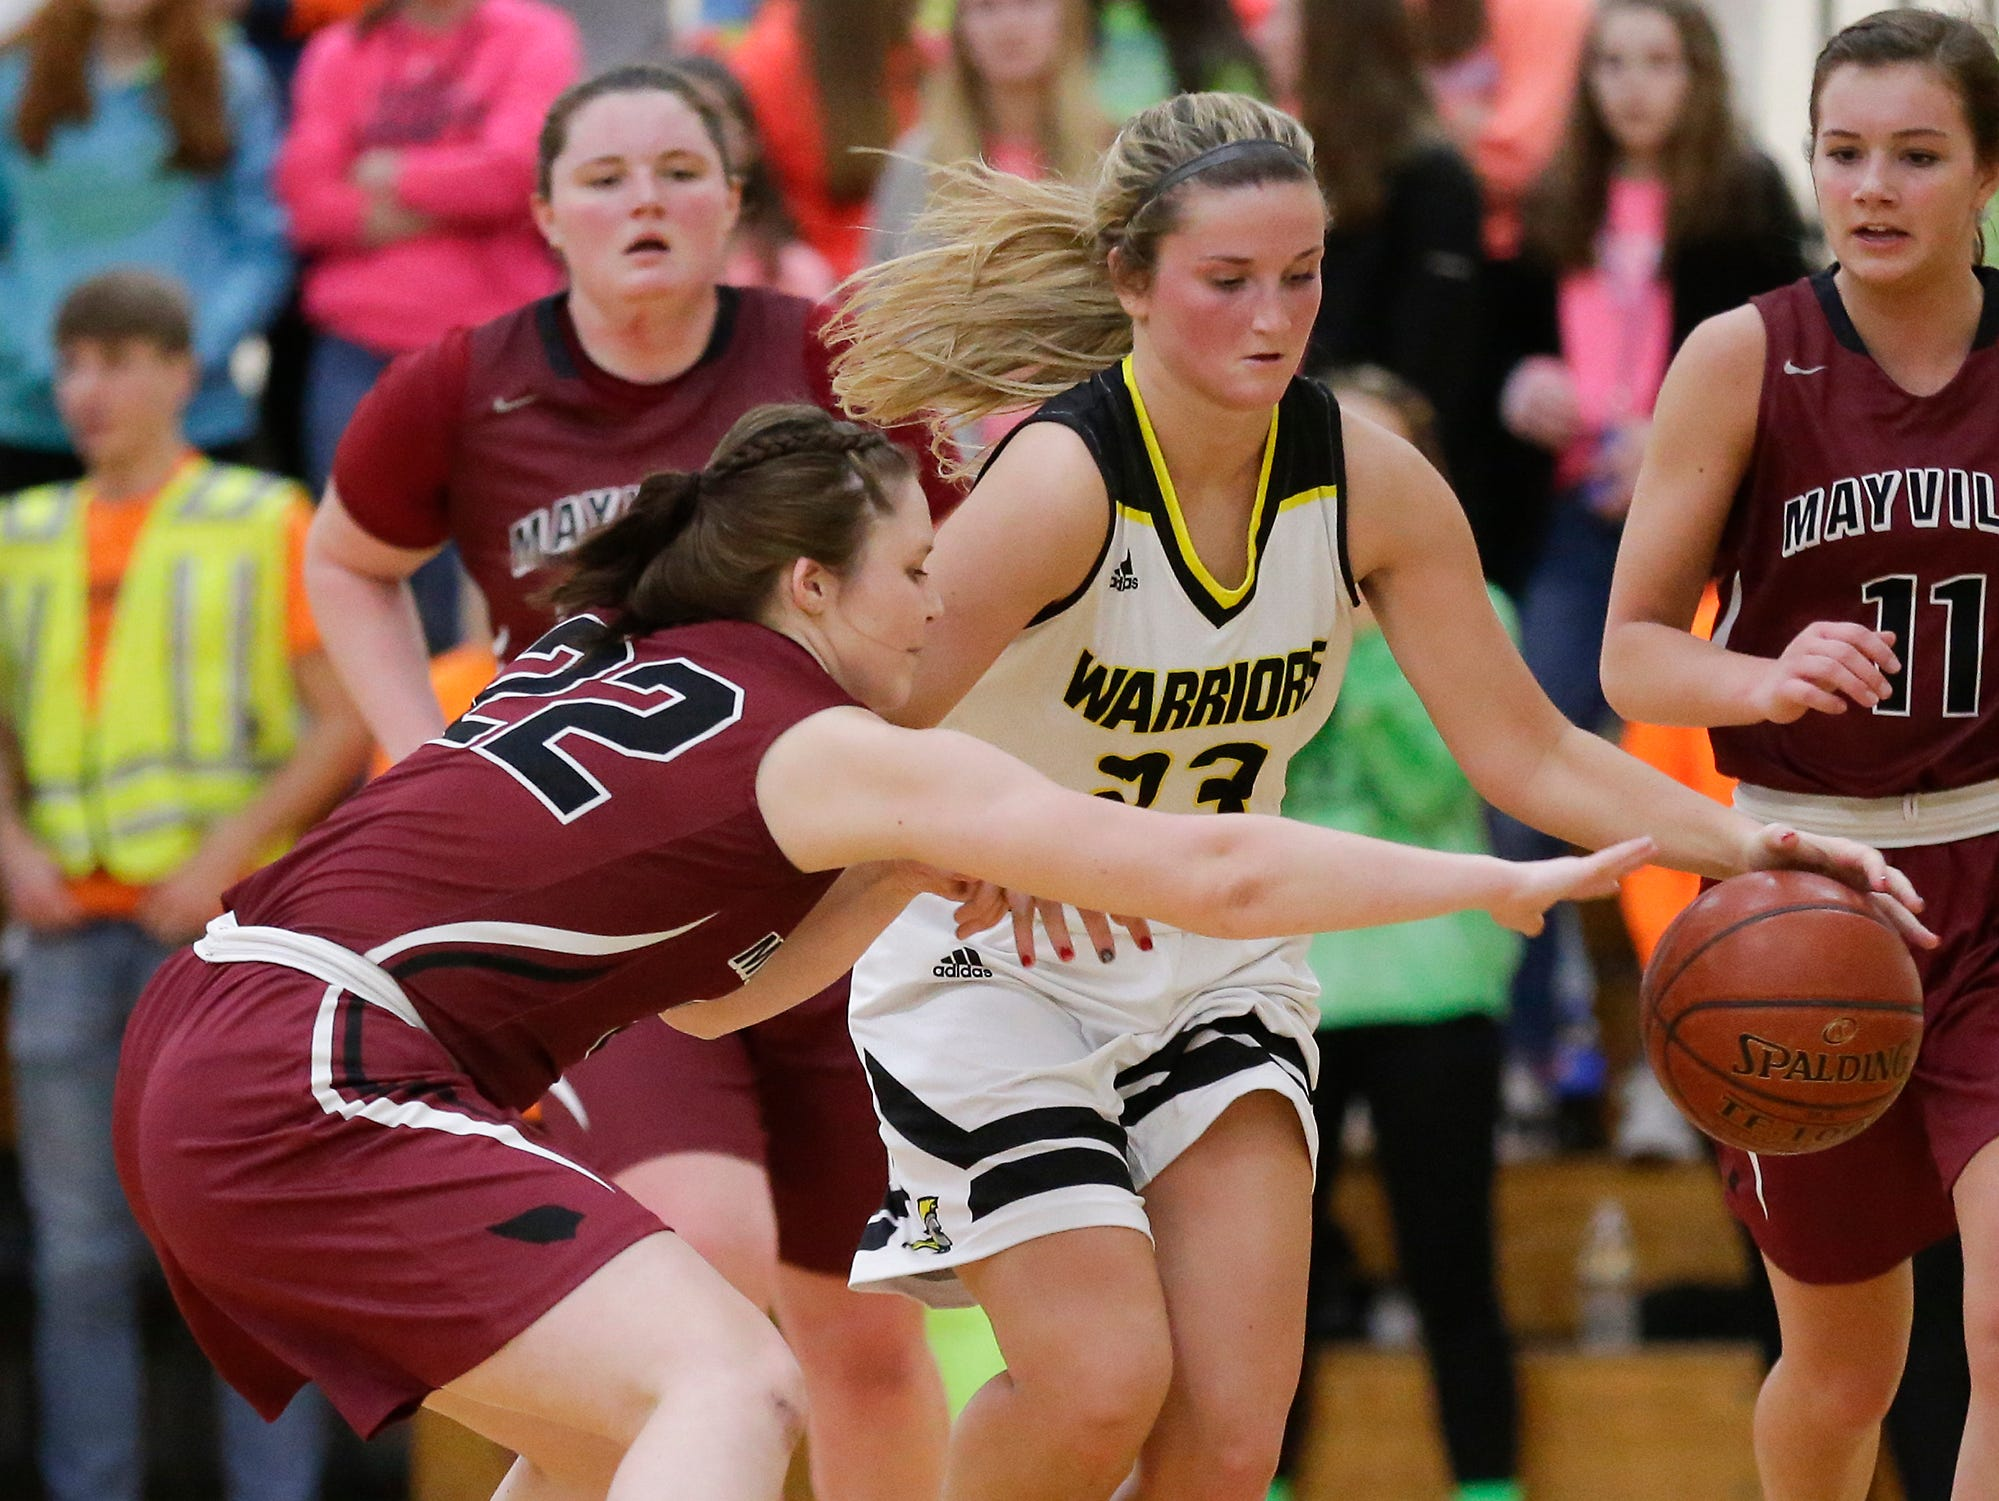 Mayville High School girls basketball's Reannah Zimmer (22) attempts to steal the ball from Waupun High School's Claire Harder (23) Saturday, February 23, 2019 during their WIAA Division 4 sectional quarterfinal game in Waupun. Waupun won the game 62-45. Doug Raflik/USA TODAY NETWORK-Wisconsin